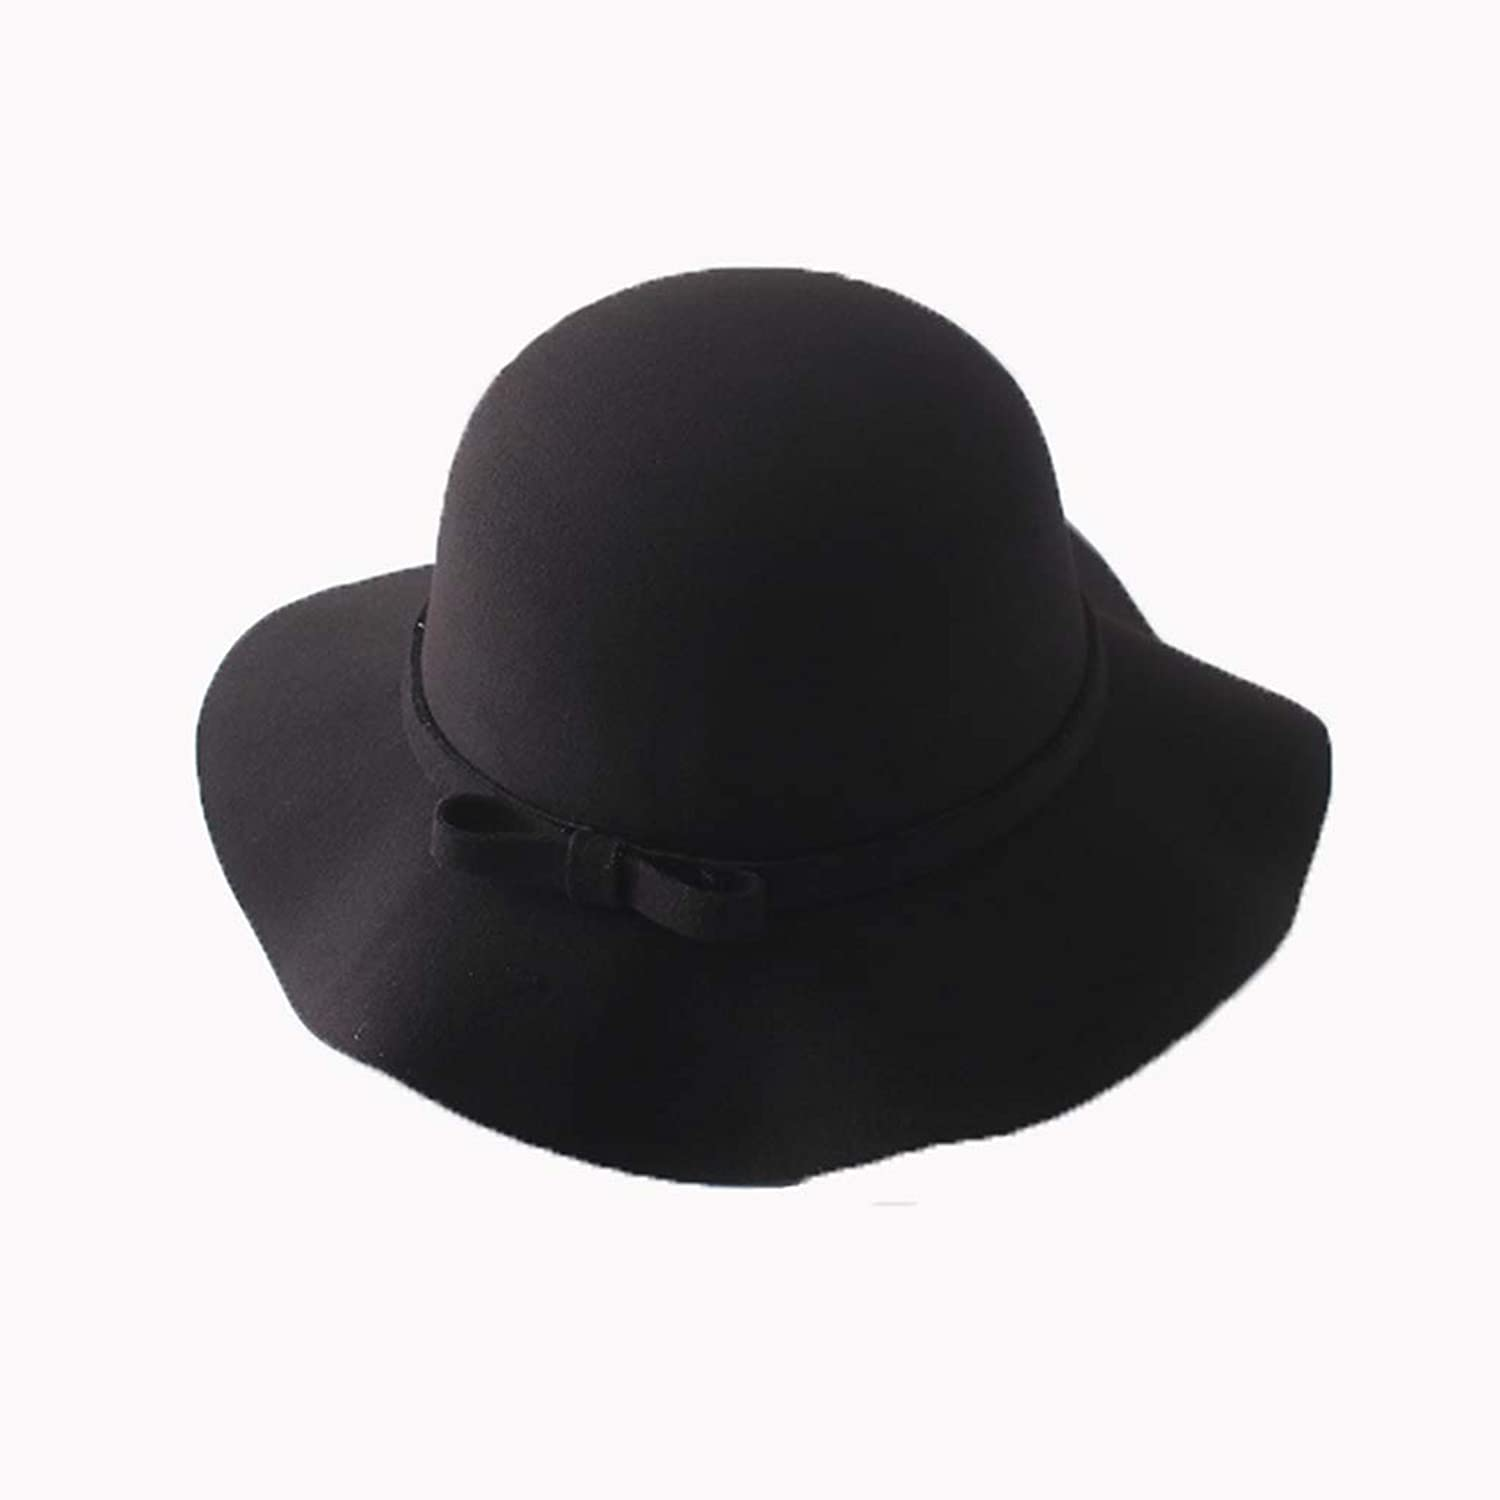 c6e6f952d Hats Autumn Winter Women Going Out Shopping Dating Fisherman's Hat ...